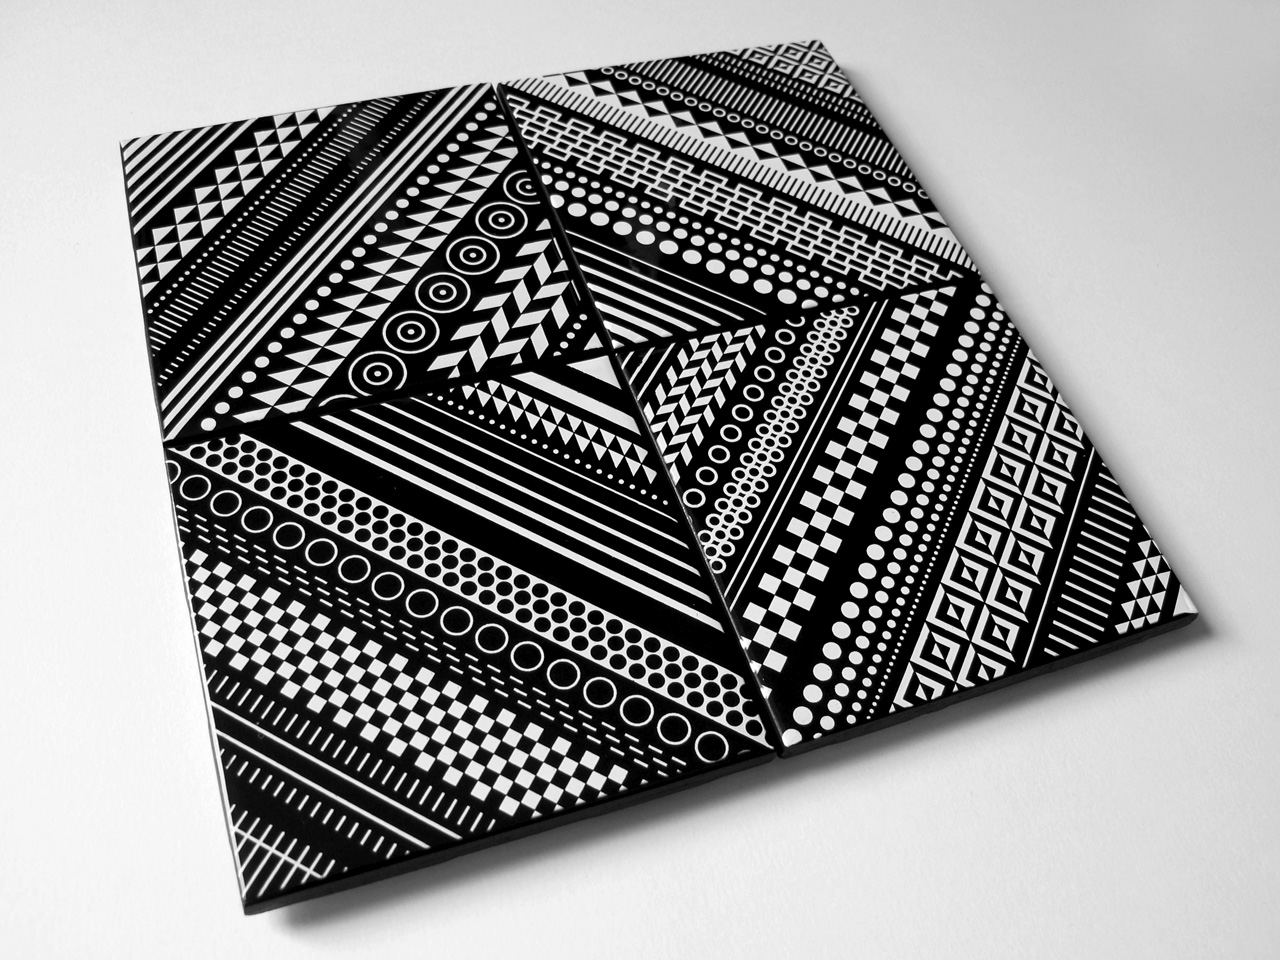 Ceramic Tile Coaster Set by Matt W. Moore